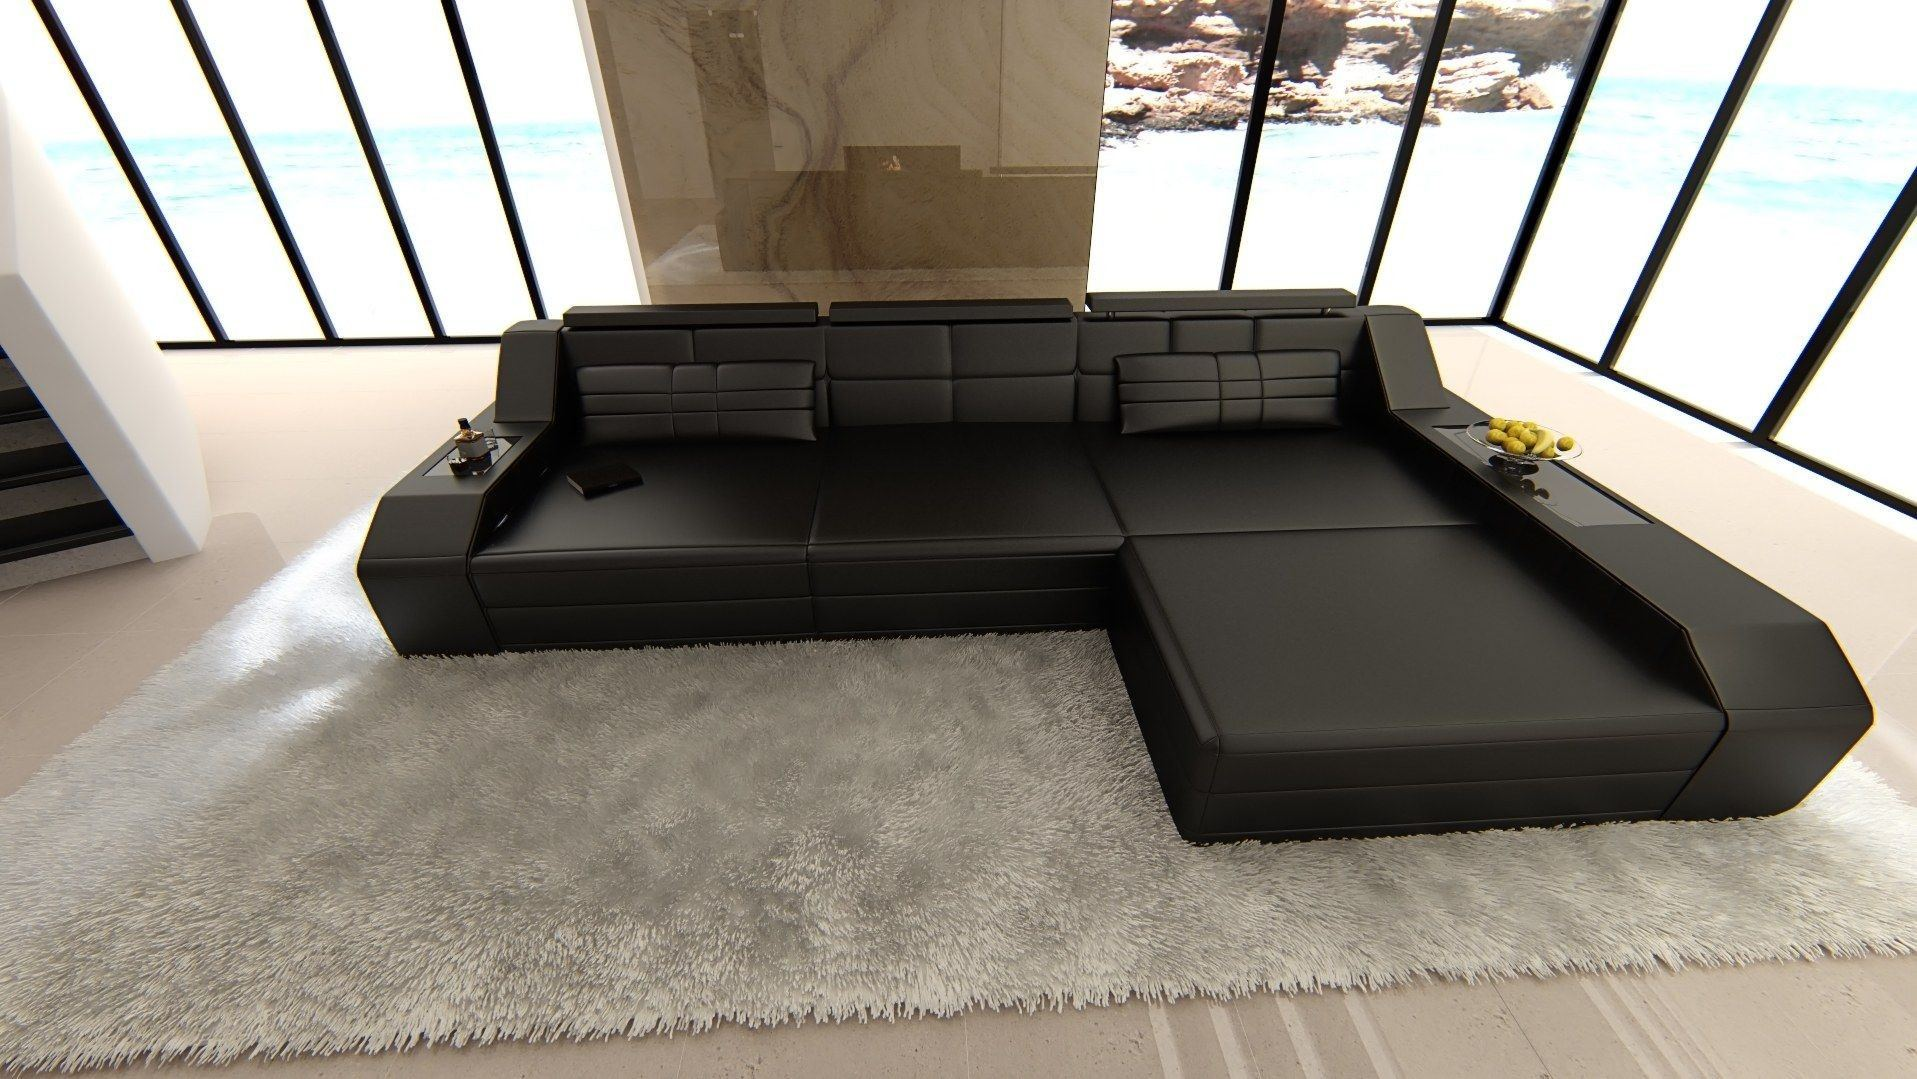 ledersofa arezzo l form schwarz schwarz. Black Bedroom Furniture Sets. Home Design Ideas